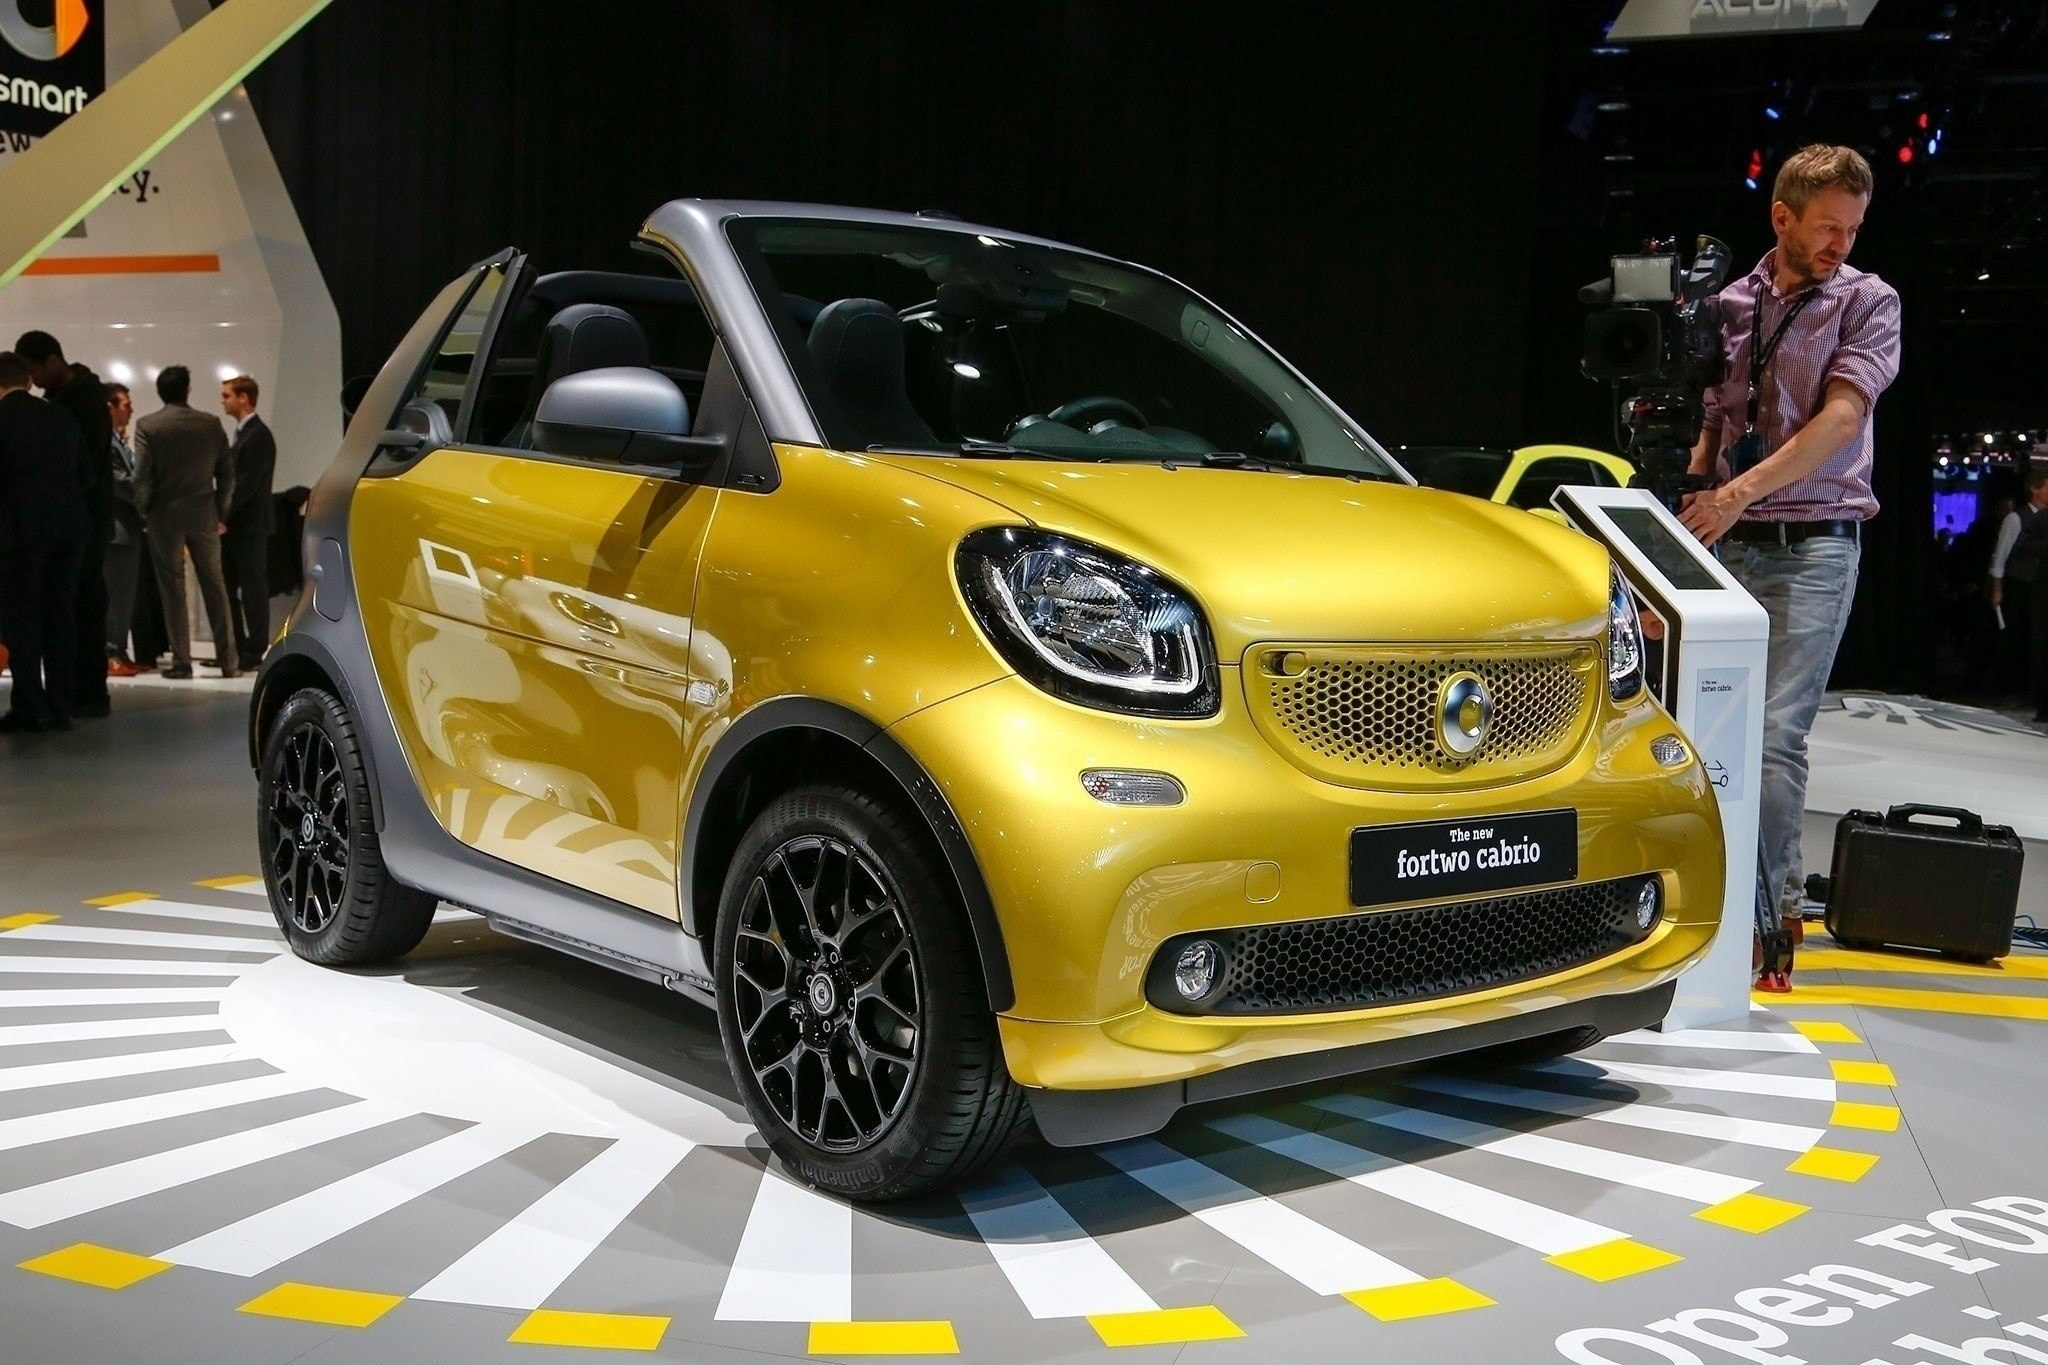 2020 Smart Fortwos Price And Release Date Smart Fortwo Smart